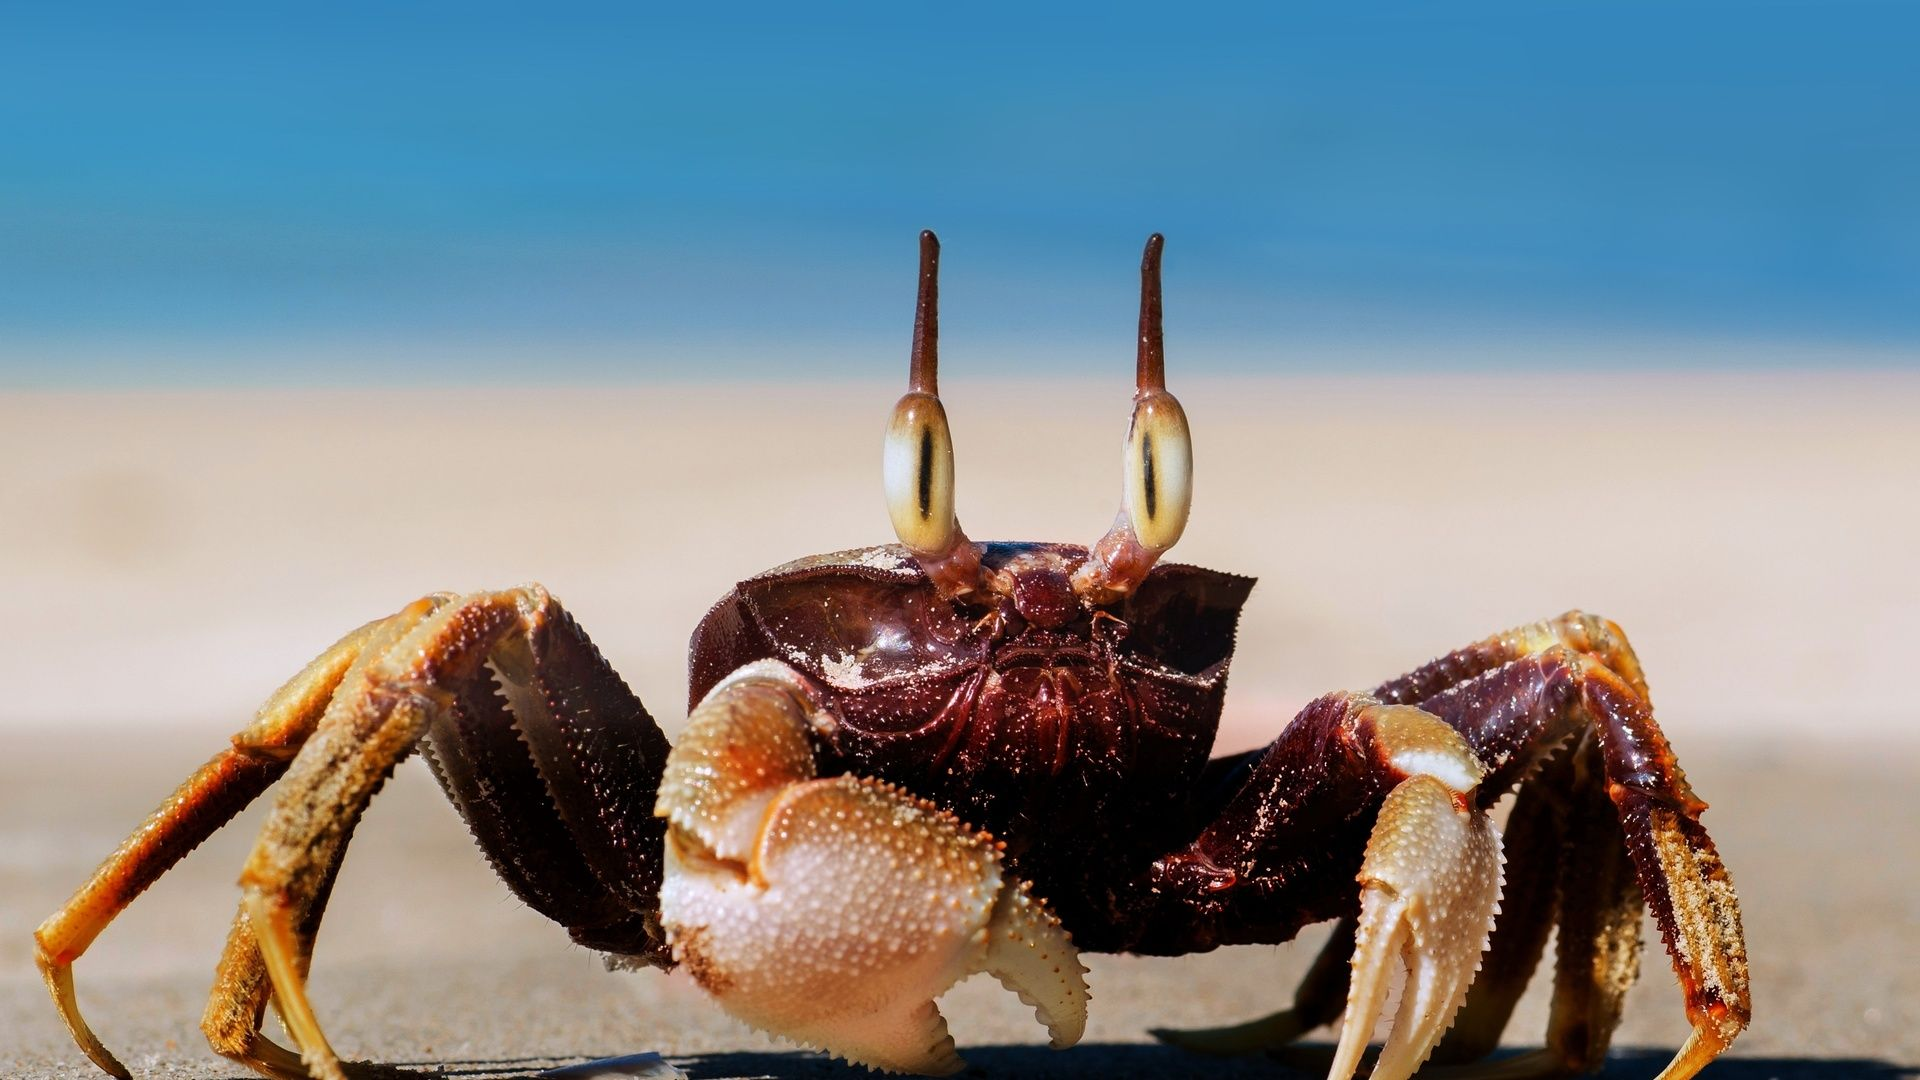 Crab wallpaper picture hd